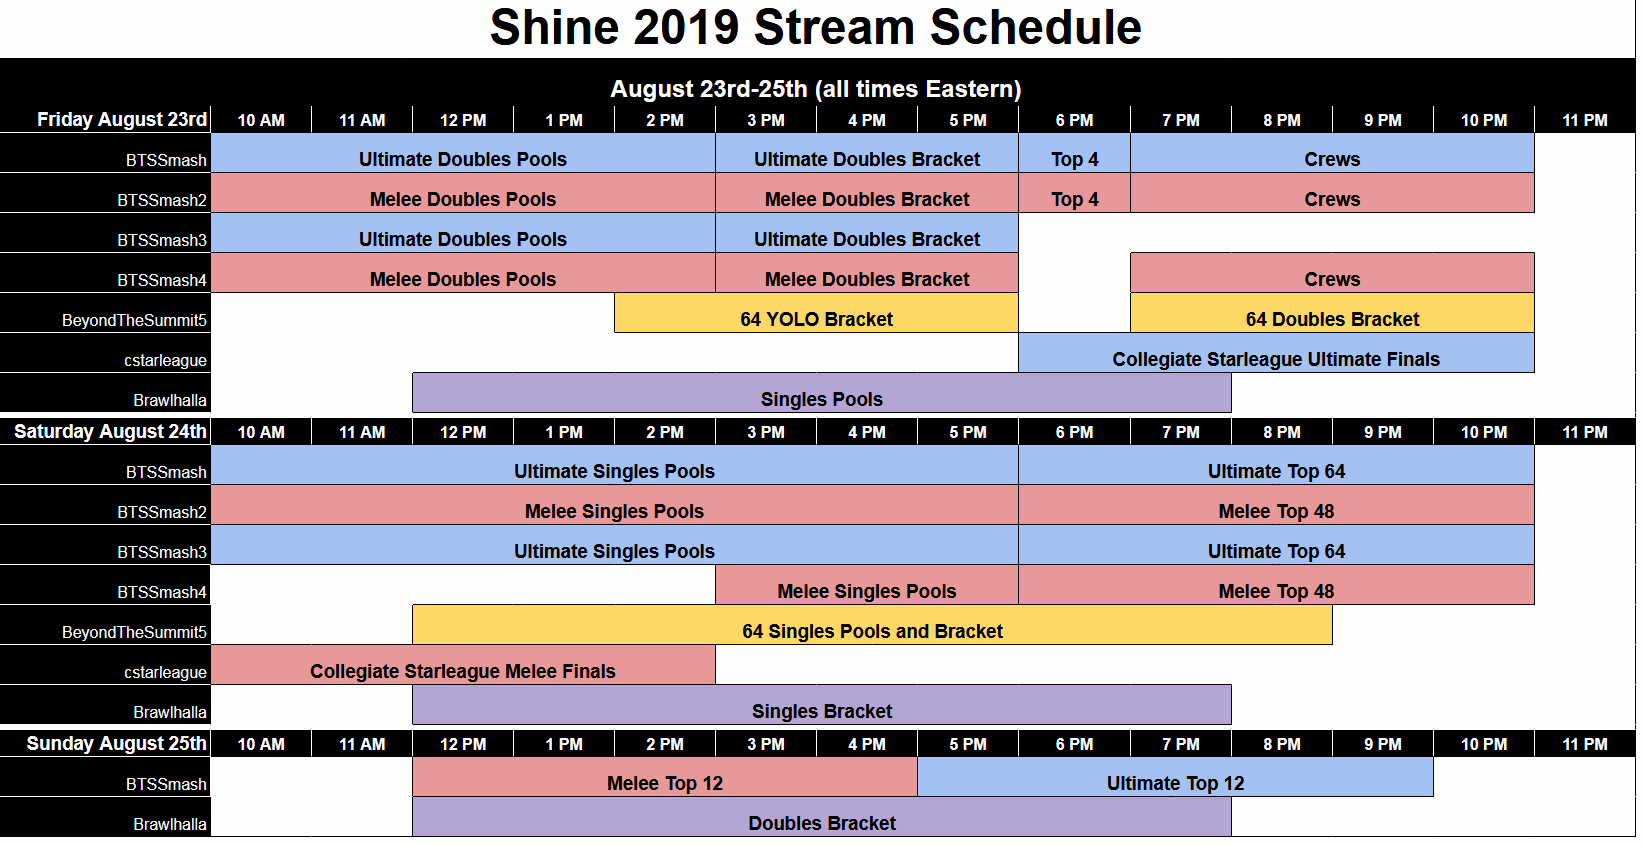 Shine 2019 Event Schedule 1 out of 1 image gallery